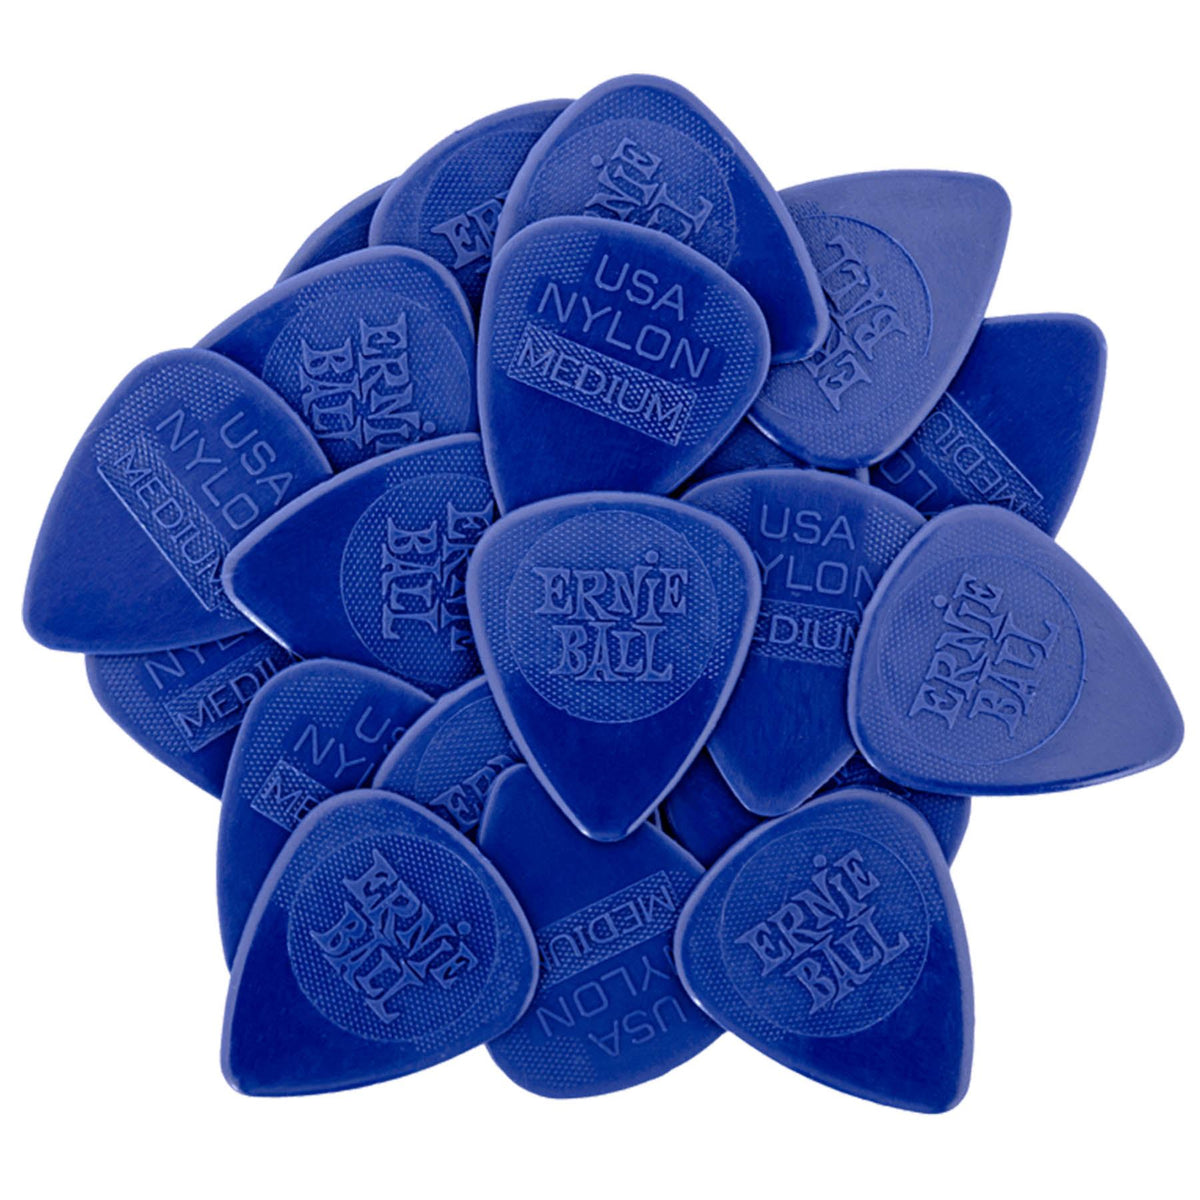 Ernie Ball P09131 Medium Nylon Picks 50-Pack